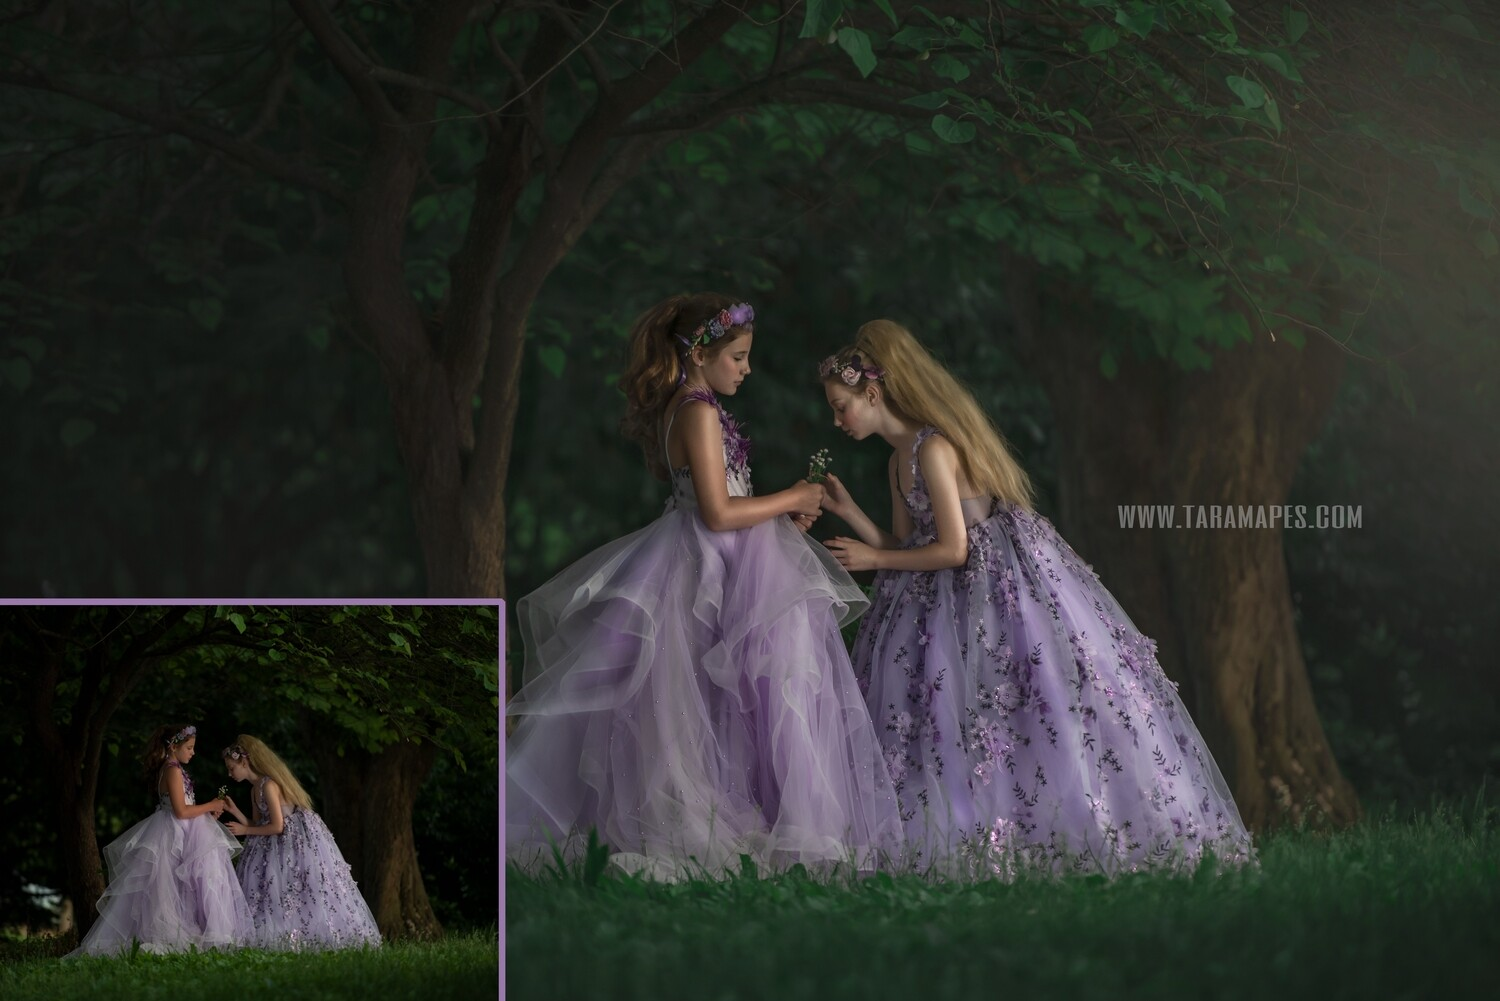 The Enchanted Forest Photoshop Edit Tutorial by Tara Mapes